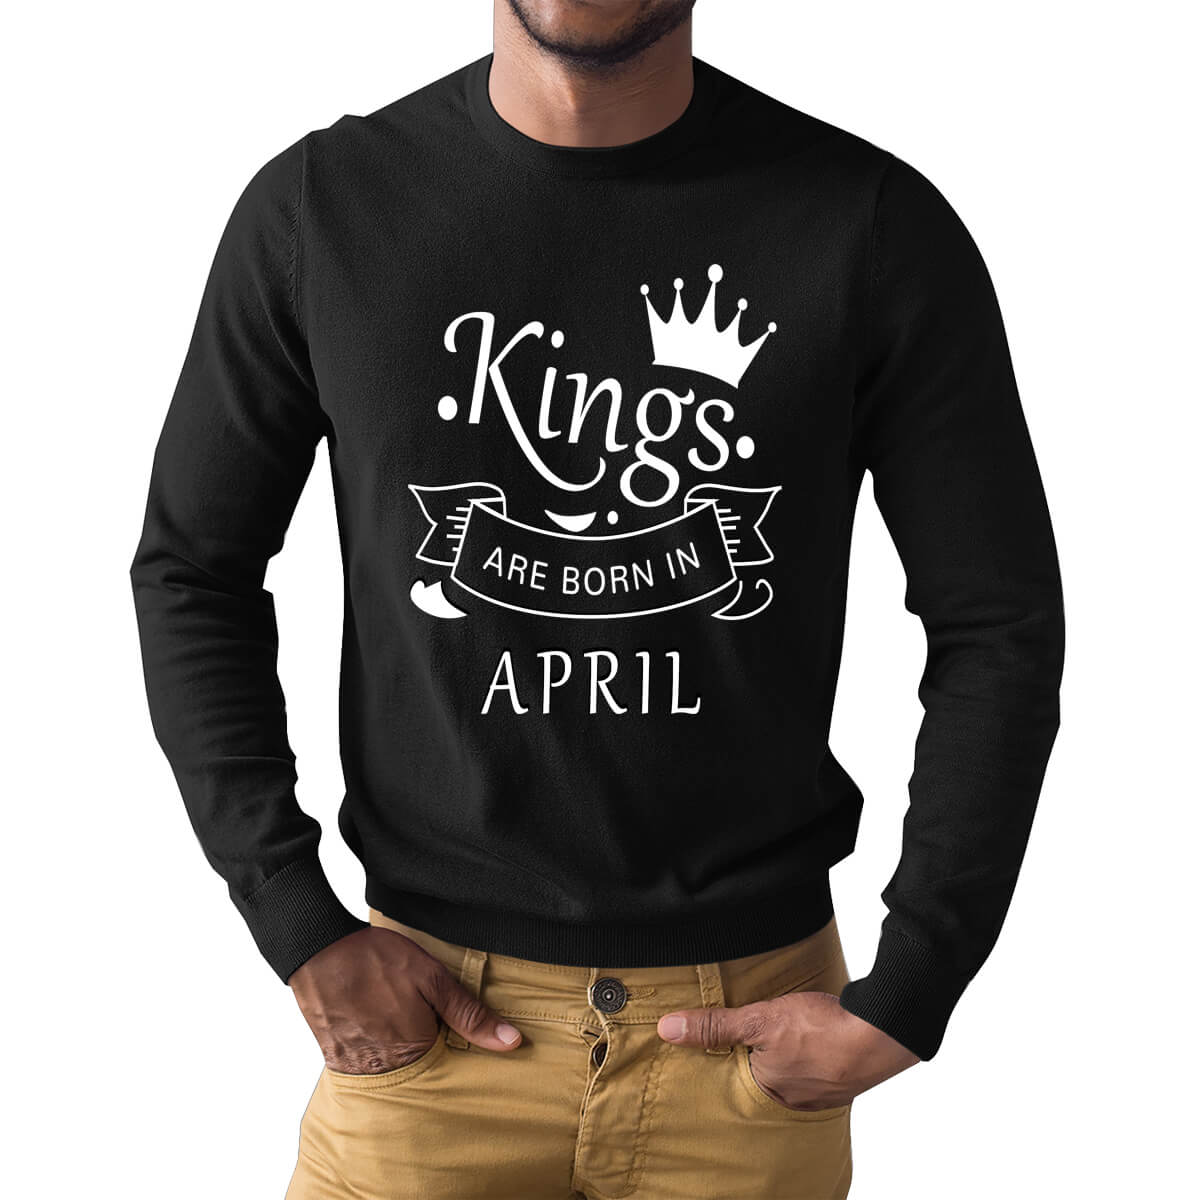 Buy Born In April Men T Shirt Products Online At Low Prices India